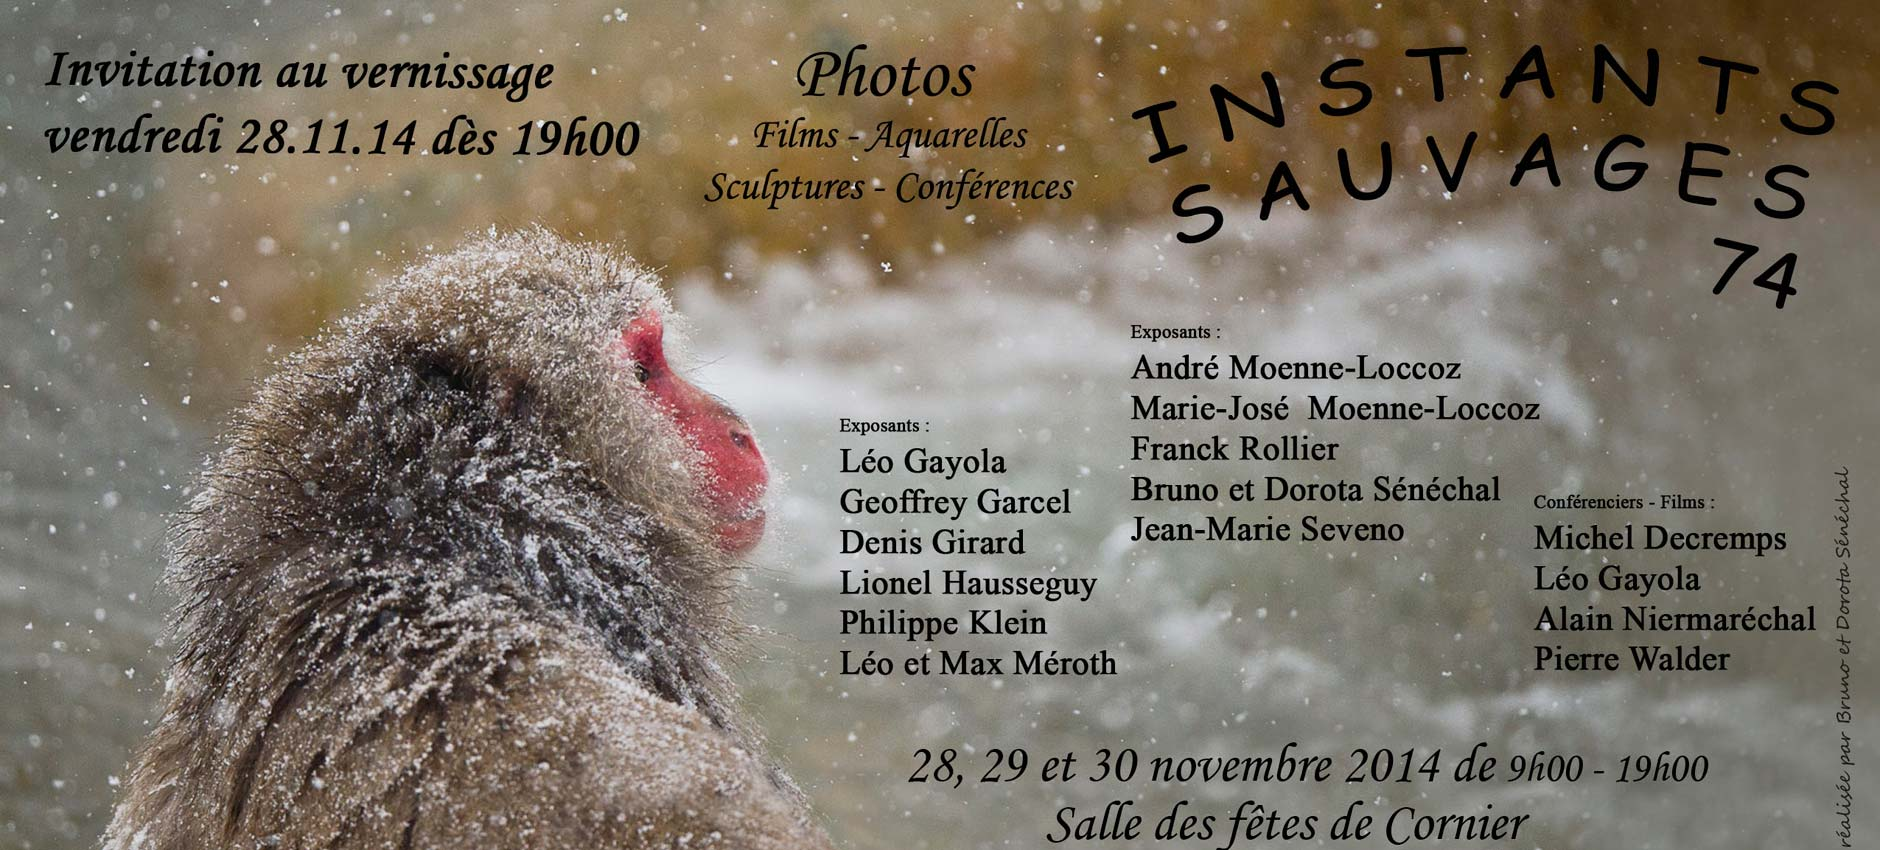 Festival Instants Sauvages 2014